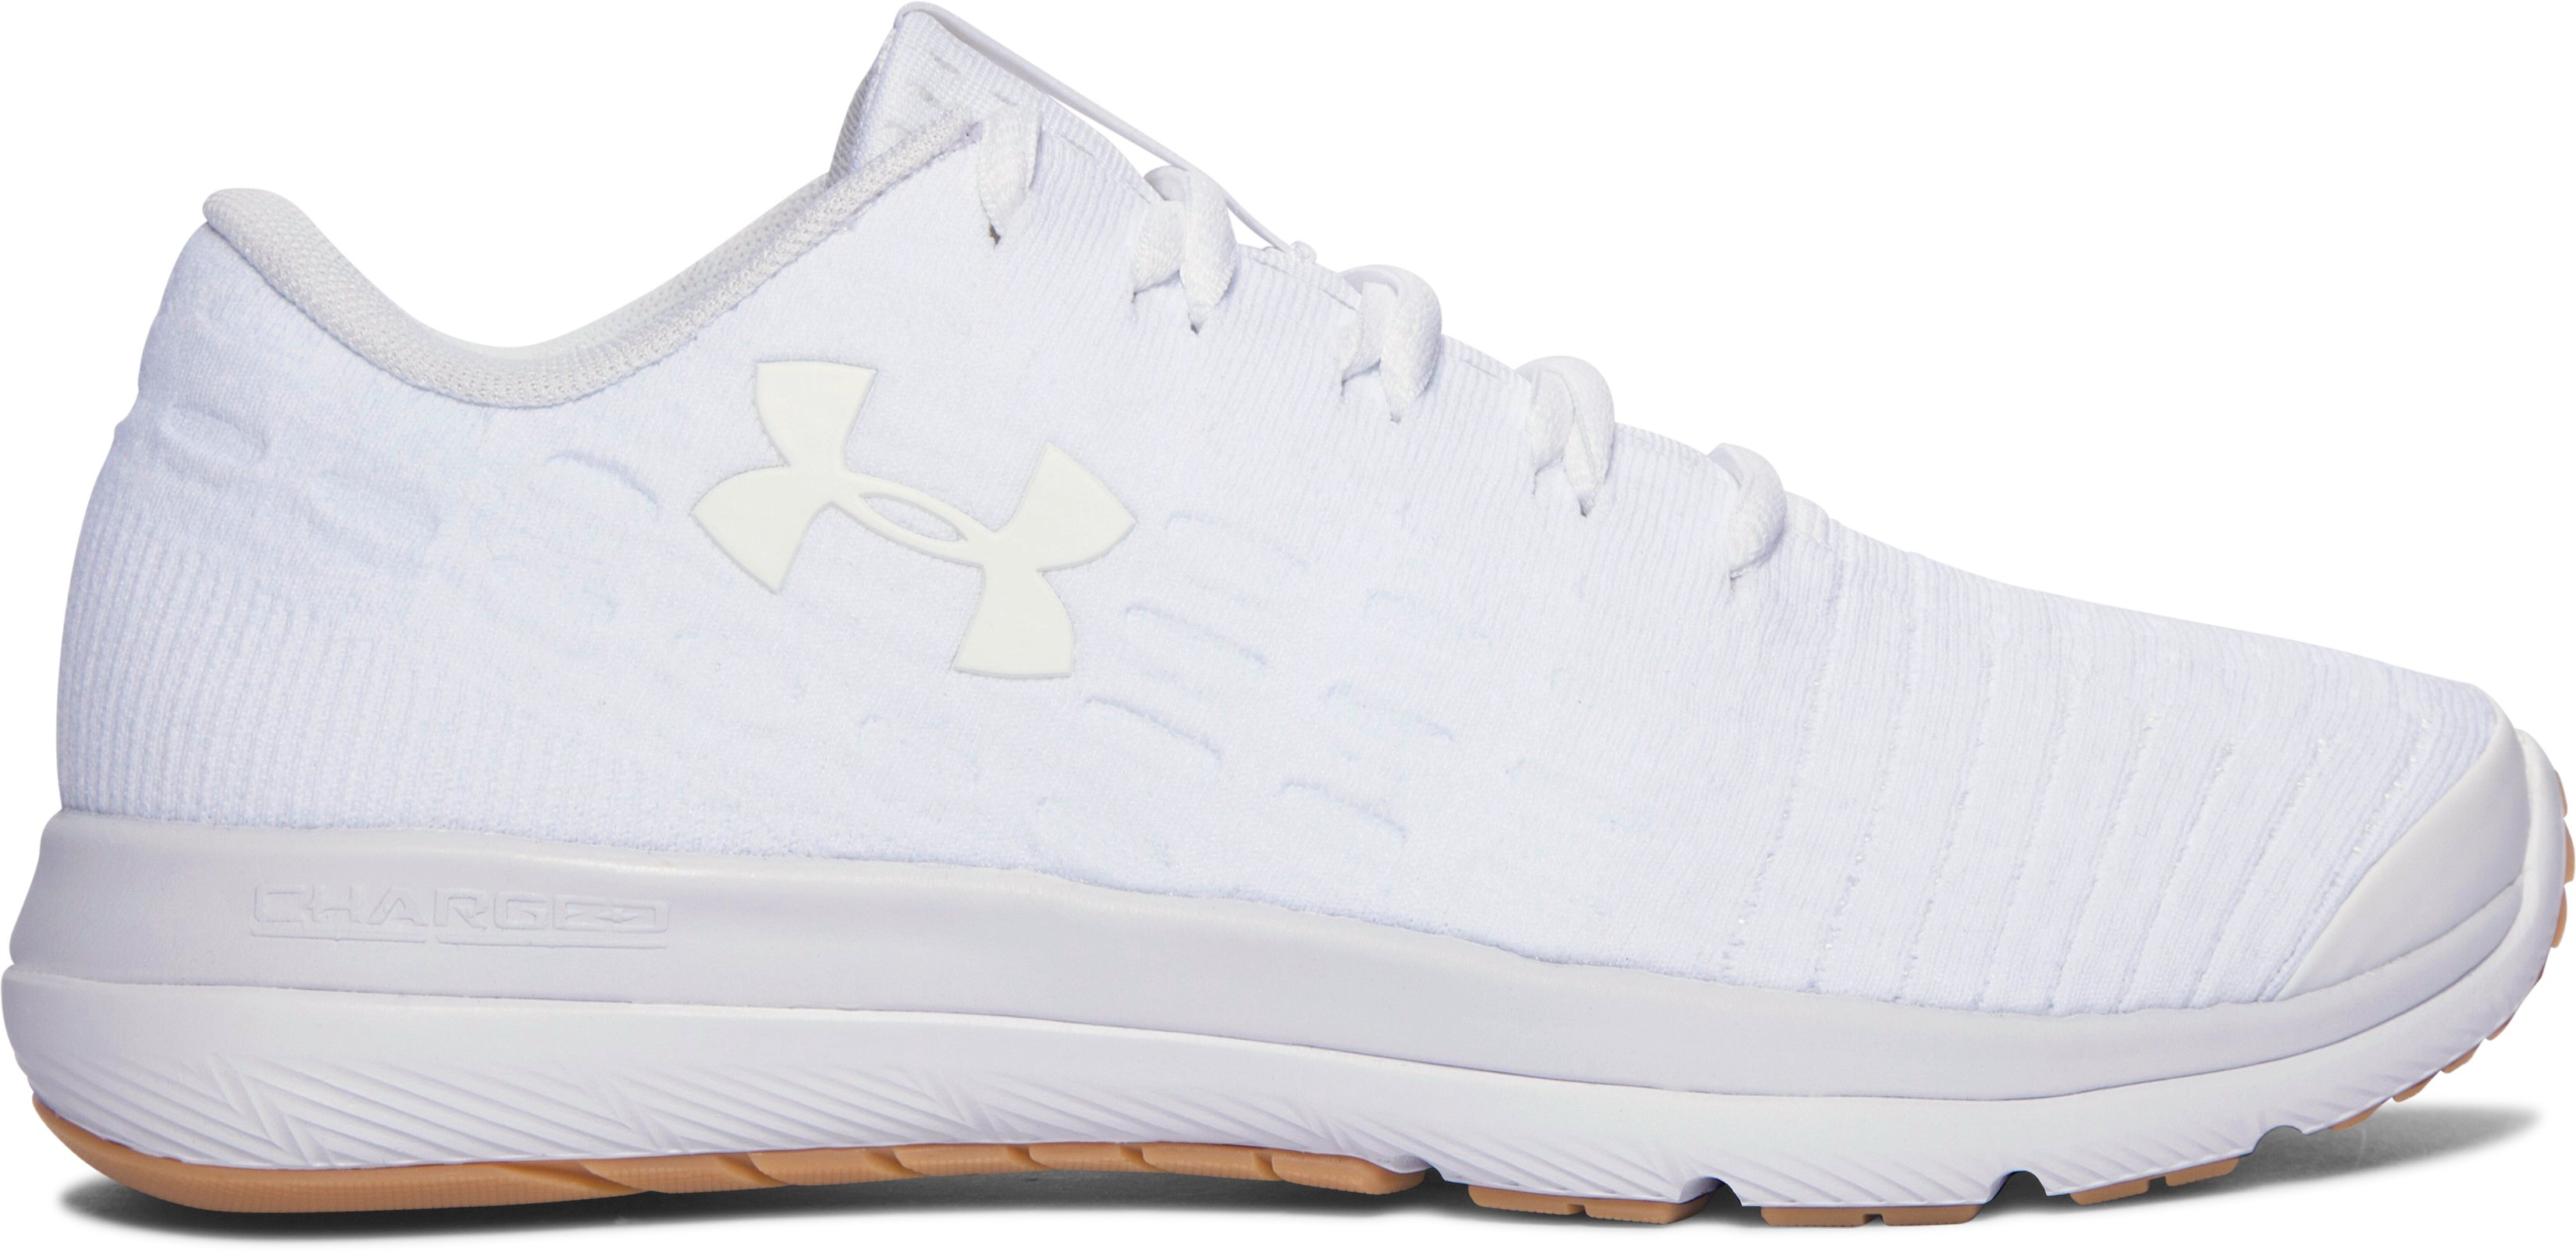 Boys' Grade School UA Threadborne Slingflex Shoes, White